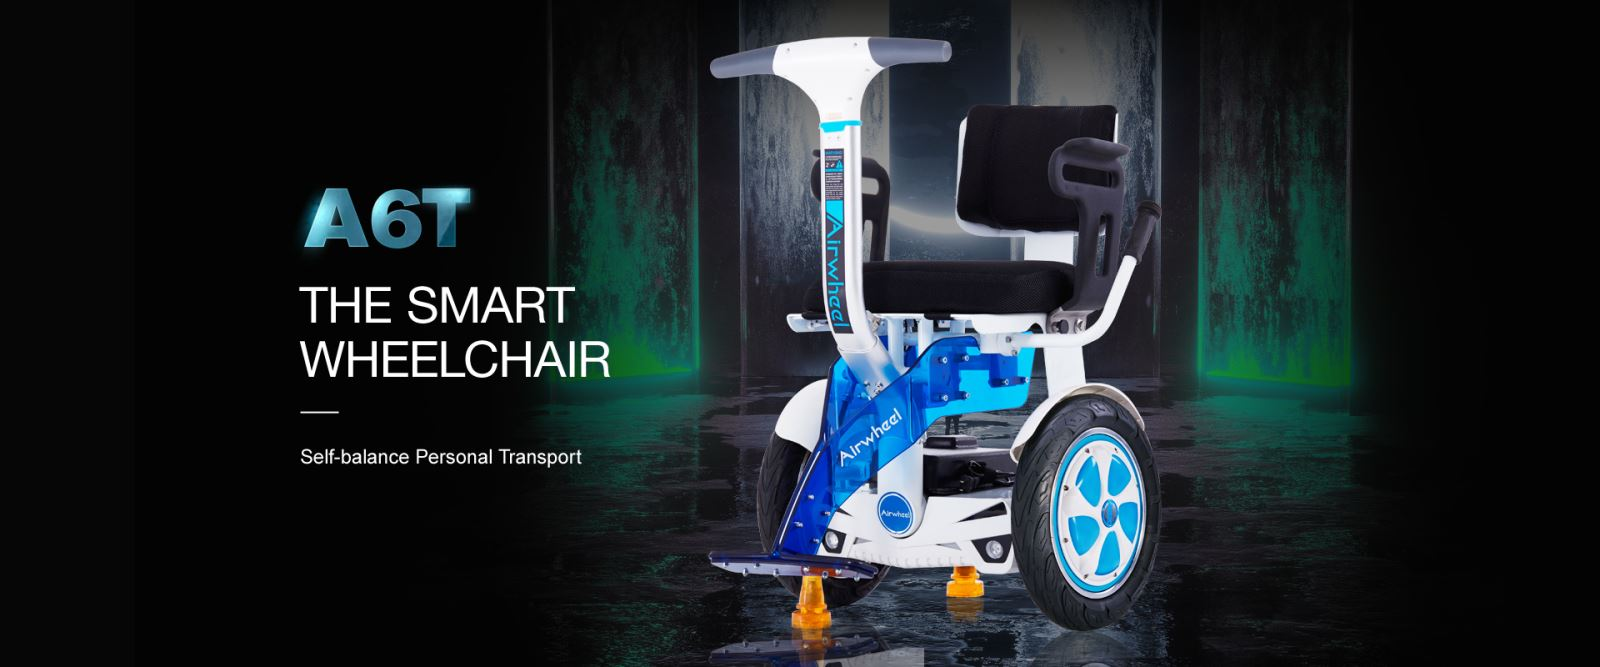 Airwheel A6T Smart wheelchair